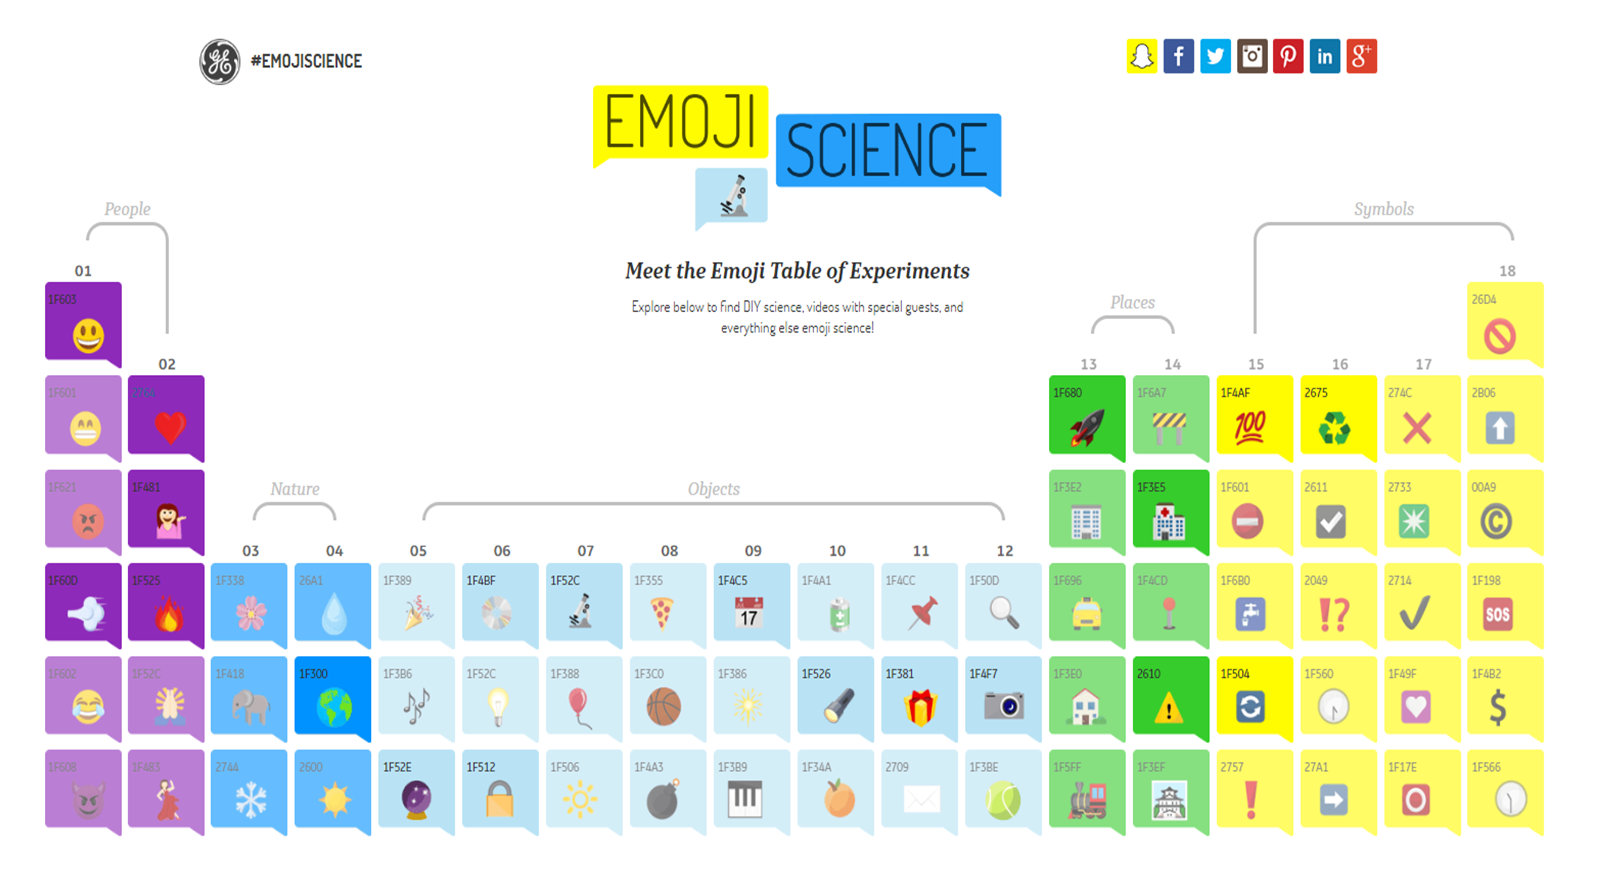 Emoji science general electric tabella elementi